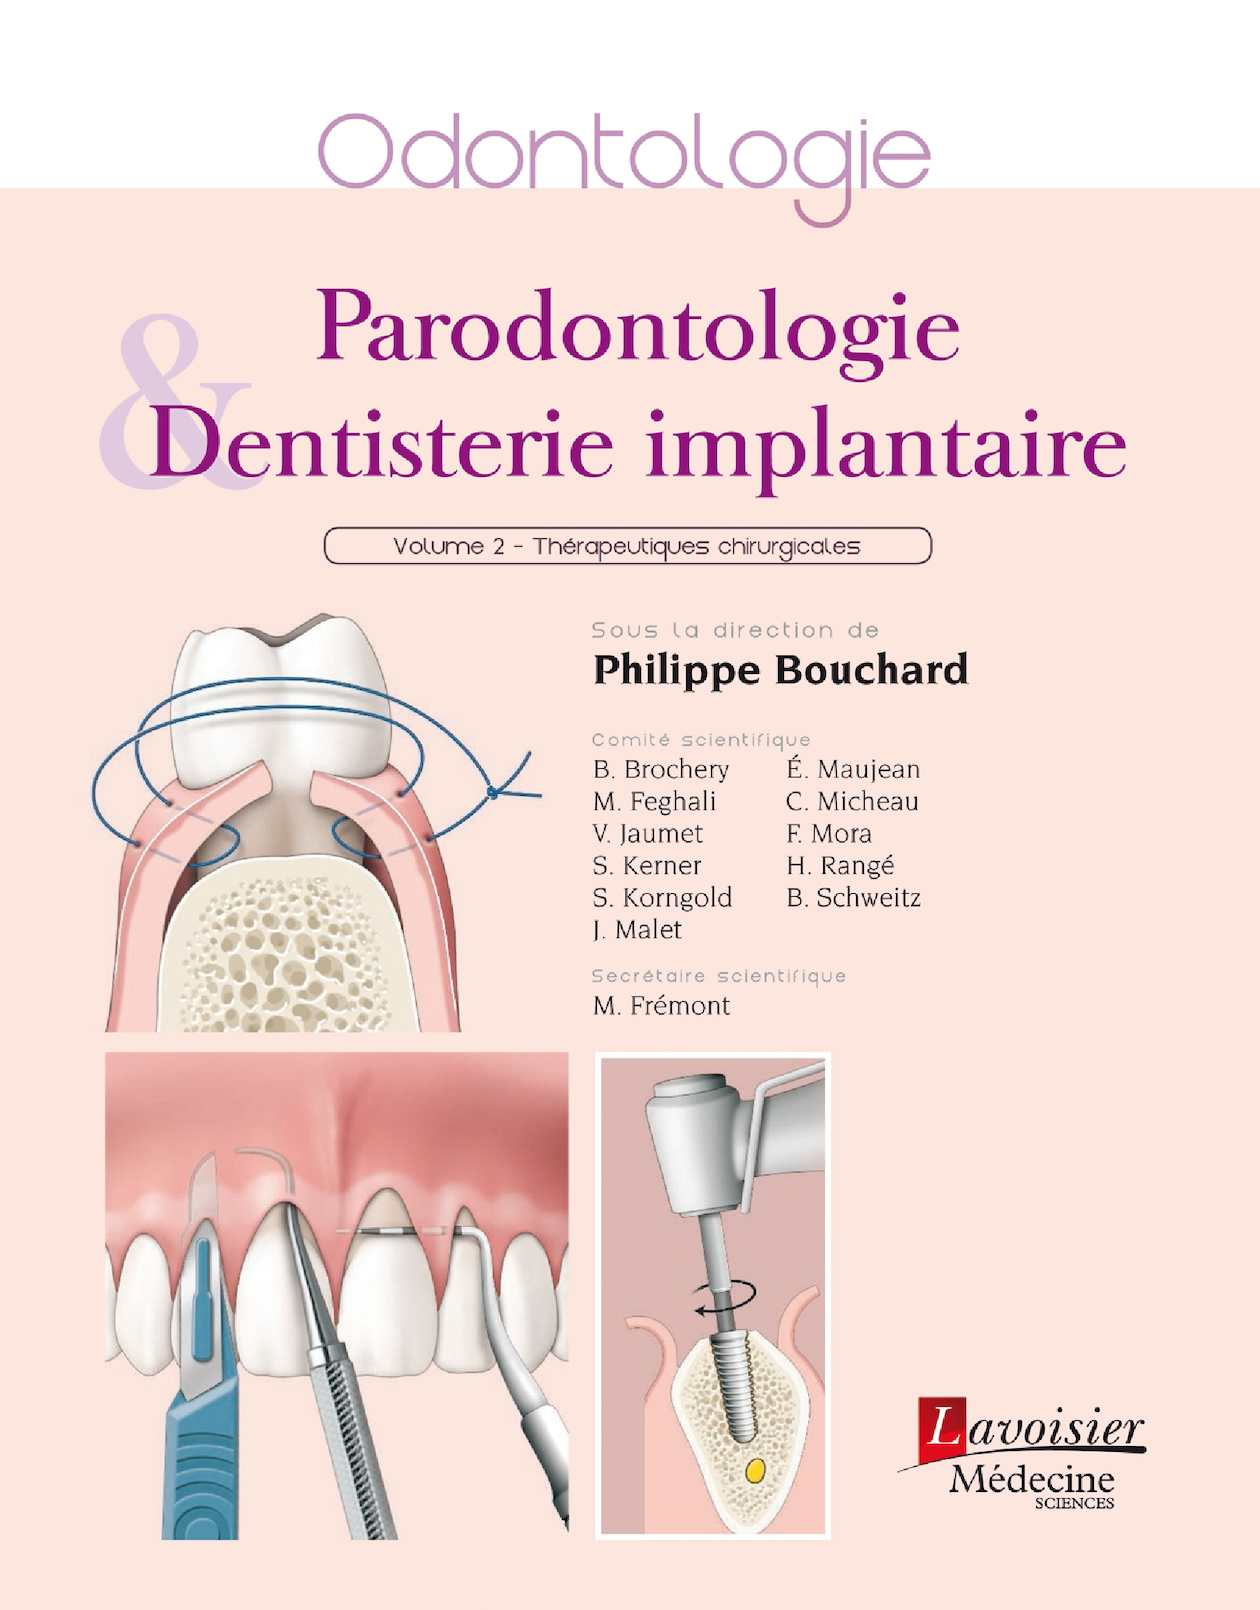 Parodontologie & dentisterie implantaire - Volume 2 : Thérapeutiques chirurgicales, BOUCHARD Philippe, pages liminaires